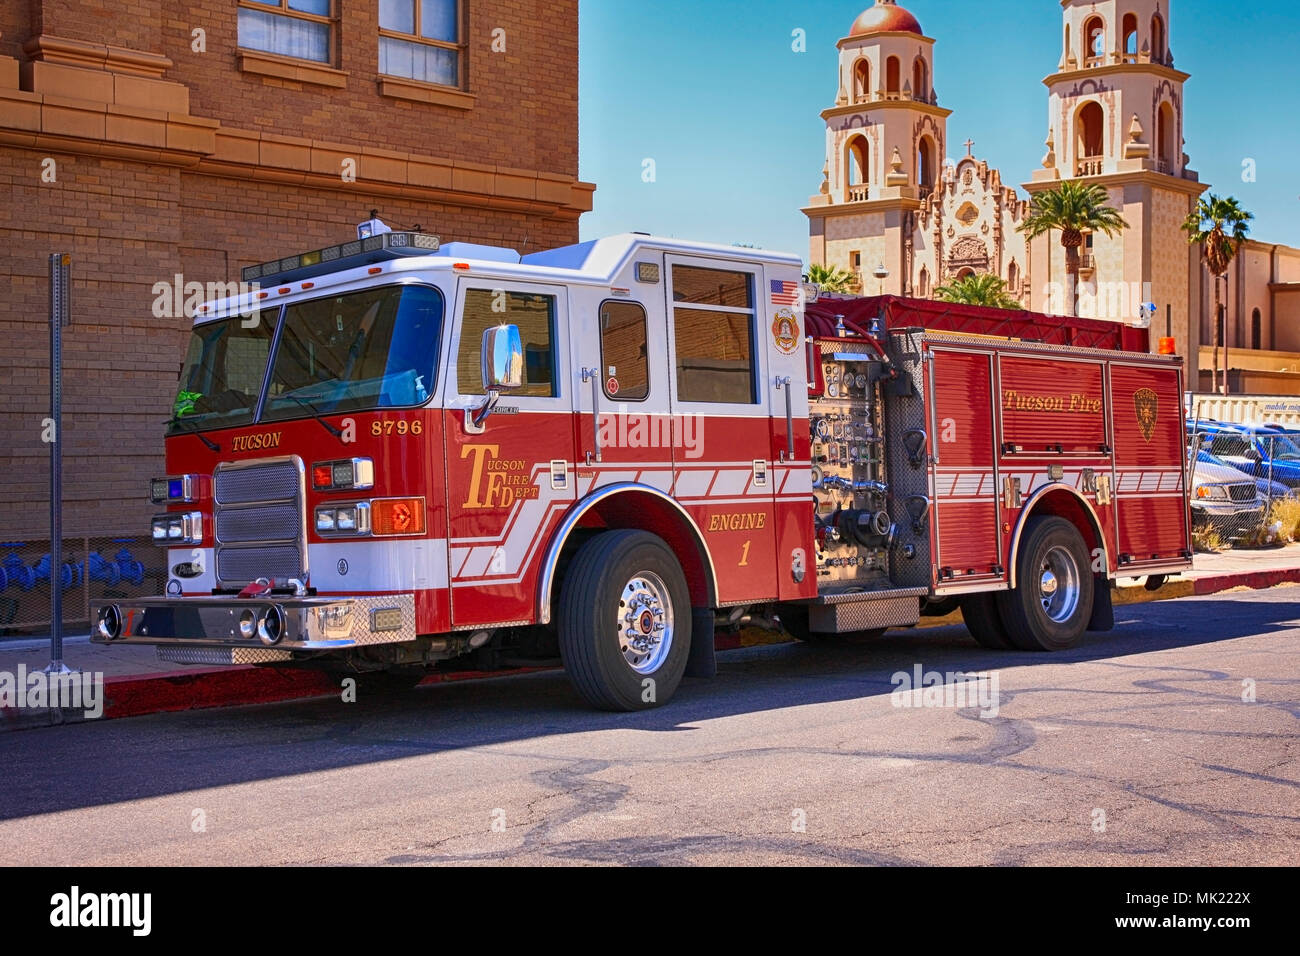 City of tucson fire dept red truck parked in downtown tucson az city of tucson fire dept red truck parked in downtown tucson az publicscrutiny Gallery